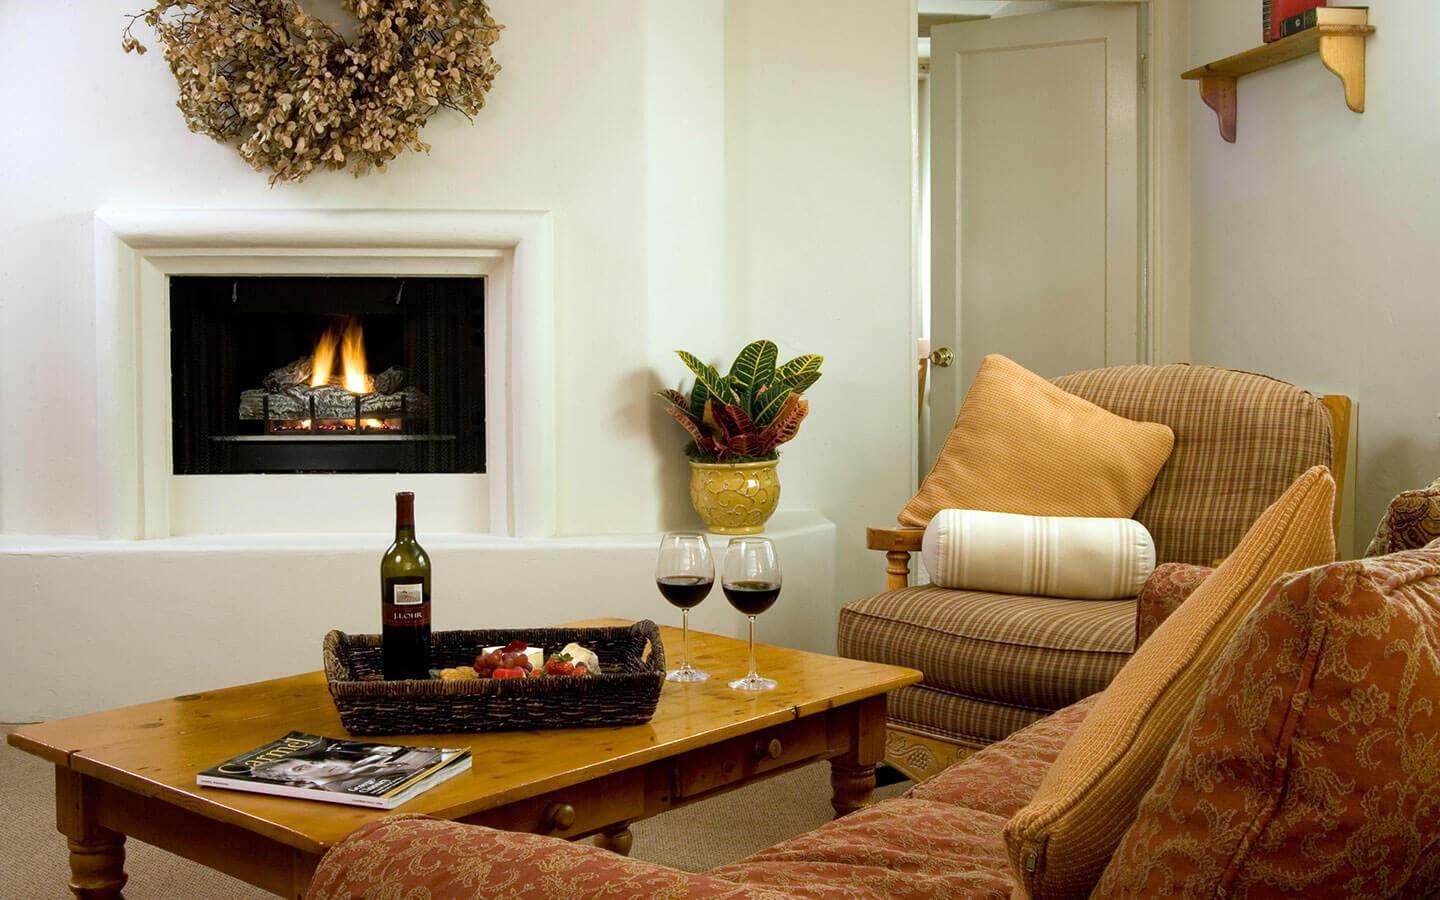 Living room seating area with fireplace and table with wine